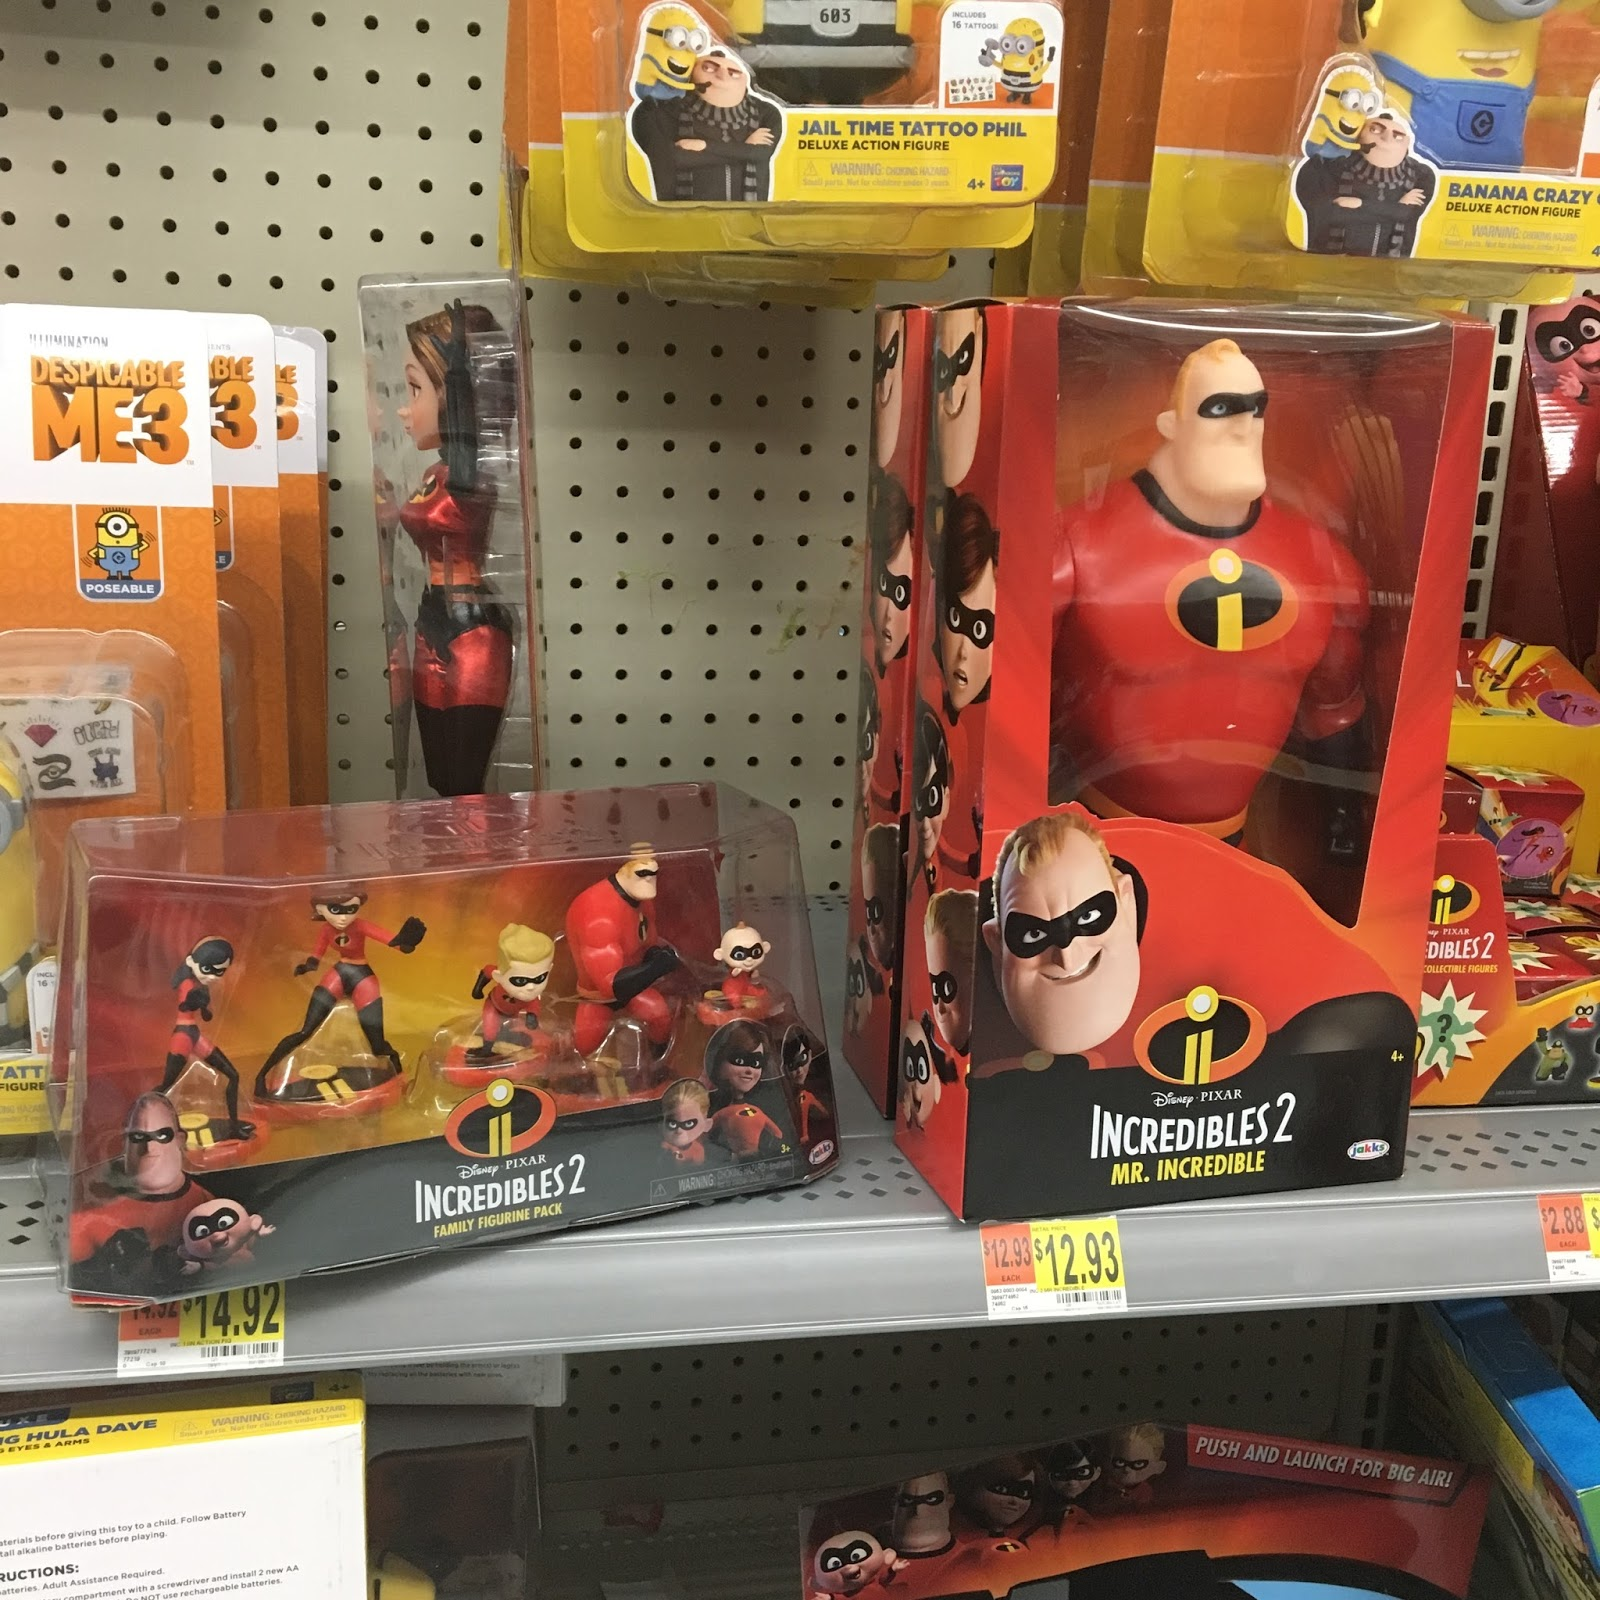 Dan The Pixar Fan Jakks Pacific Incredibles 2 Toys